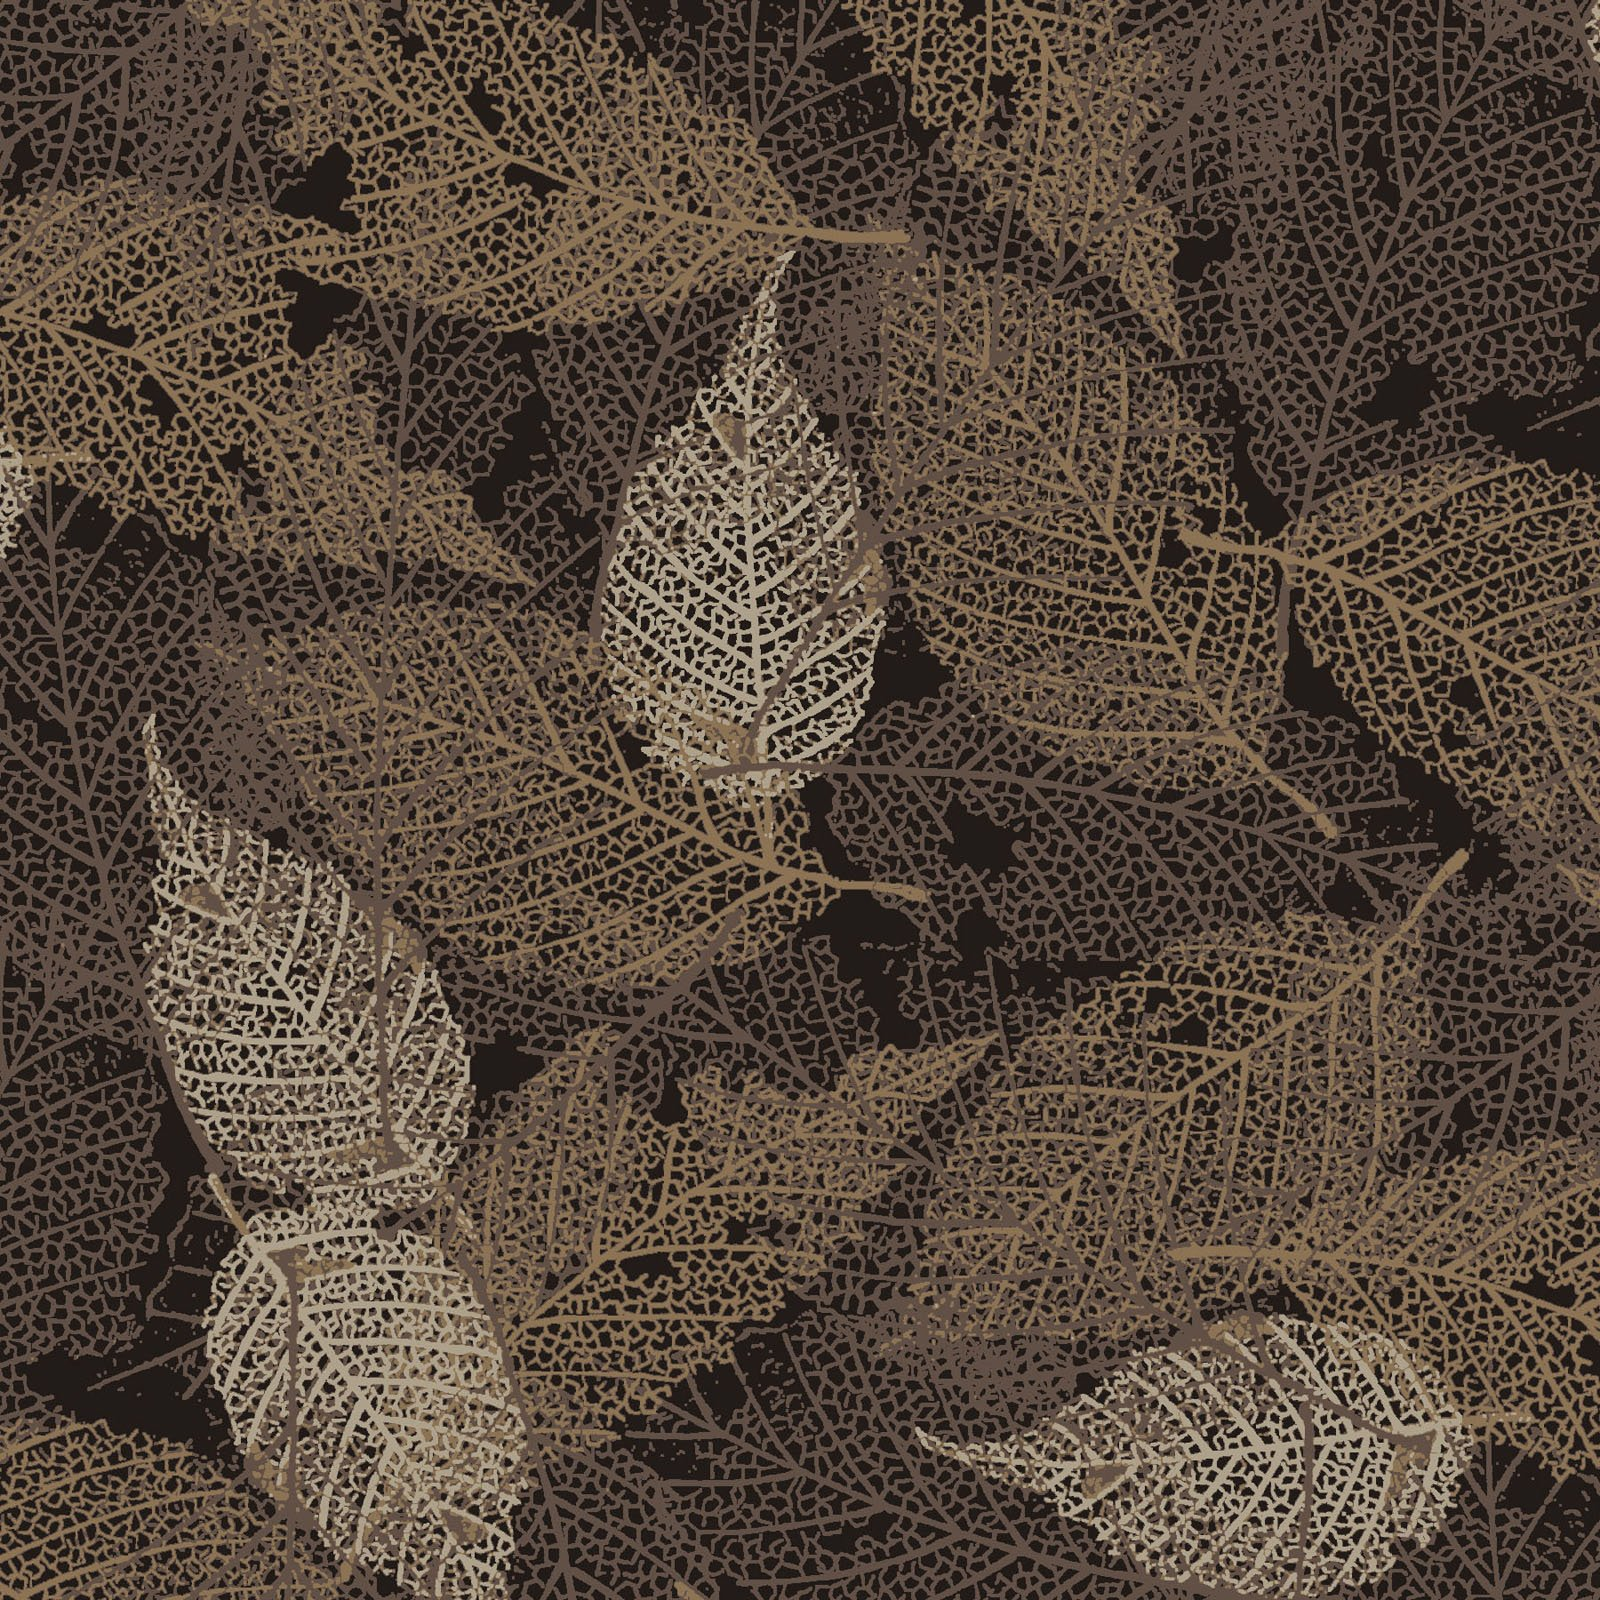 FOLI-4478 Z - FOLIAGE BY P&B BOUTIQUE TEXTURE LEAVES BROWN - ARRIVING IN MAY 2021